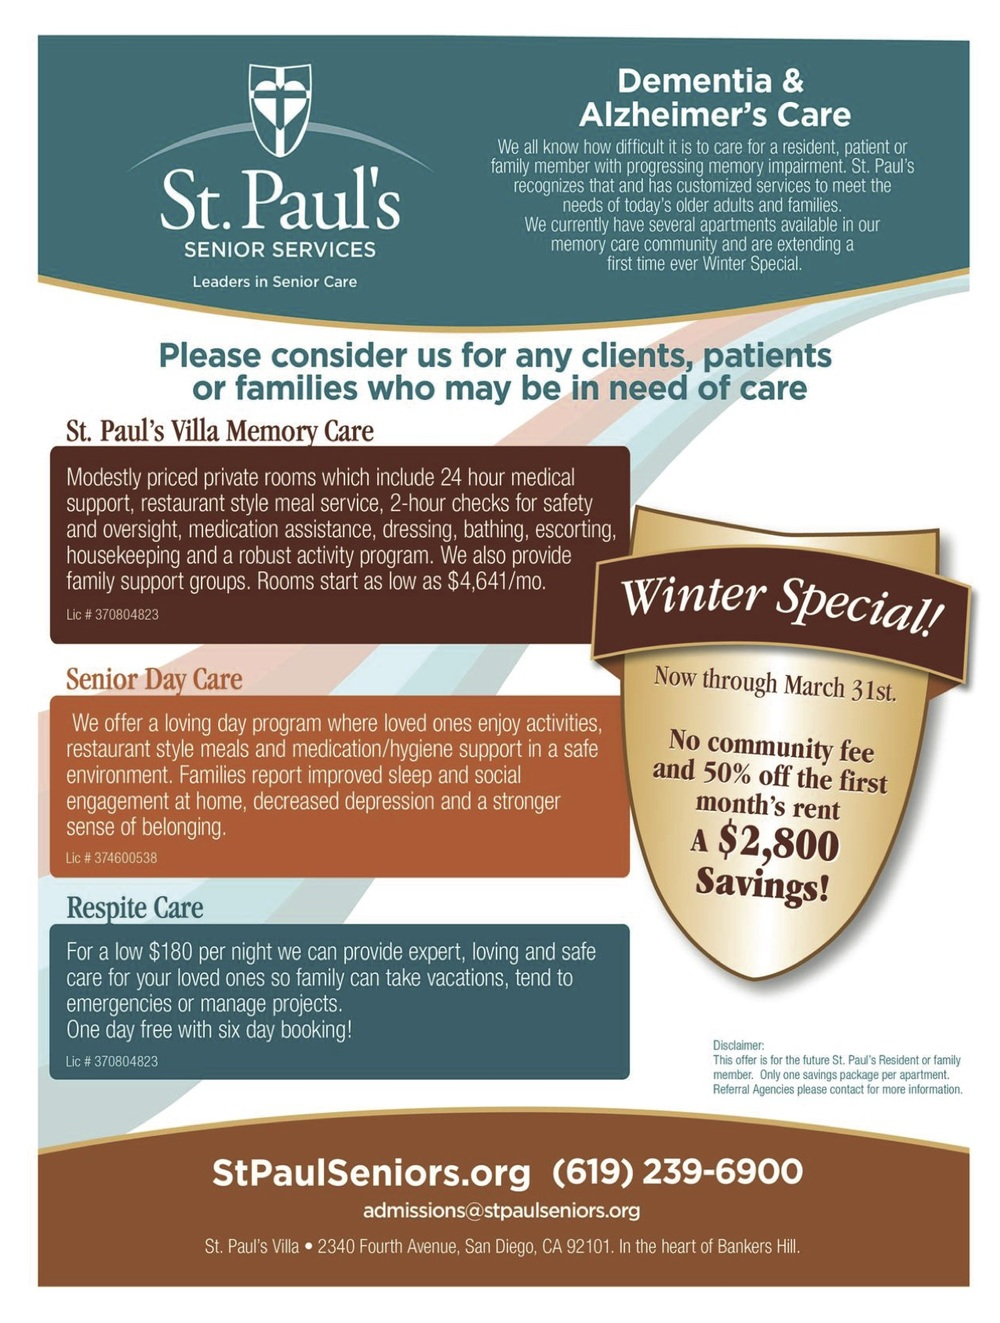 St Pauls Memory Care specials for Winter 2015.jpg